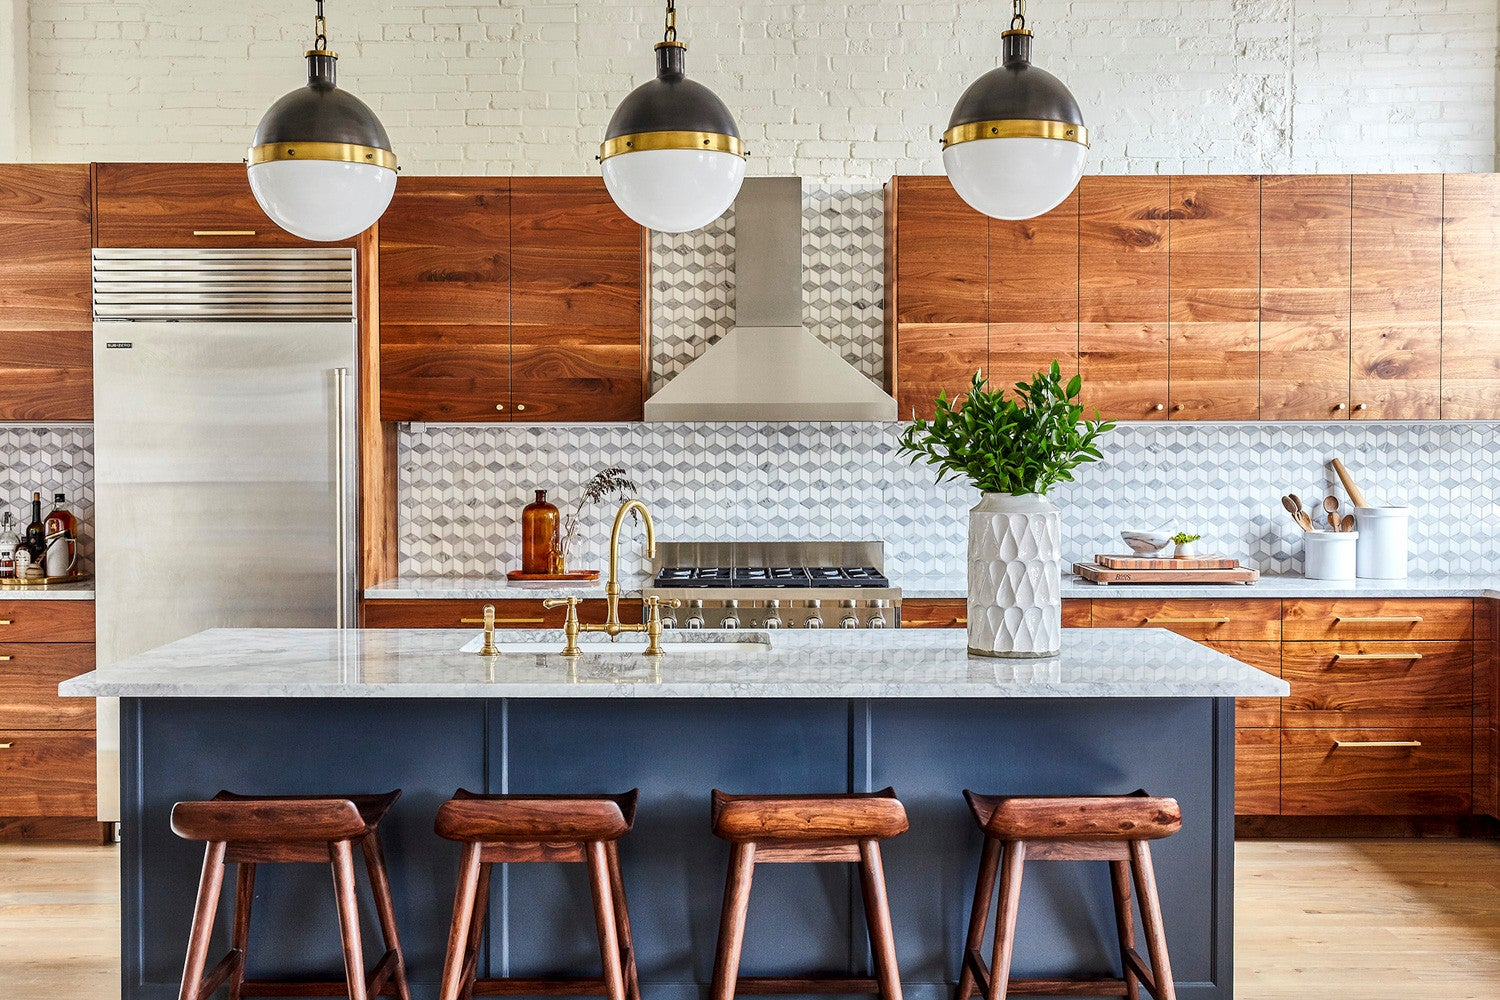 9 Reasons Why It's Time to Paint Your Kitchen